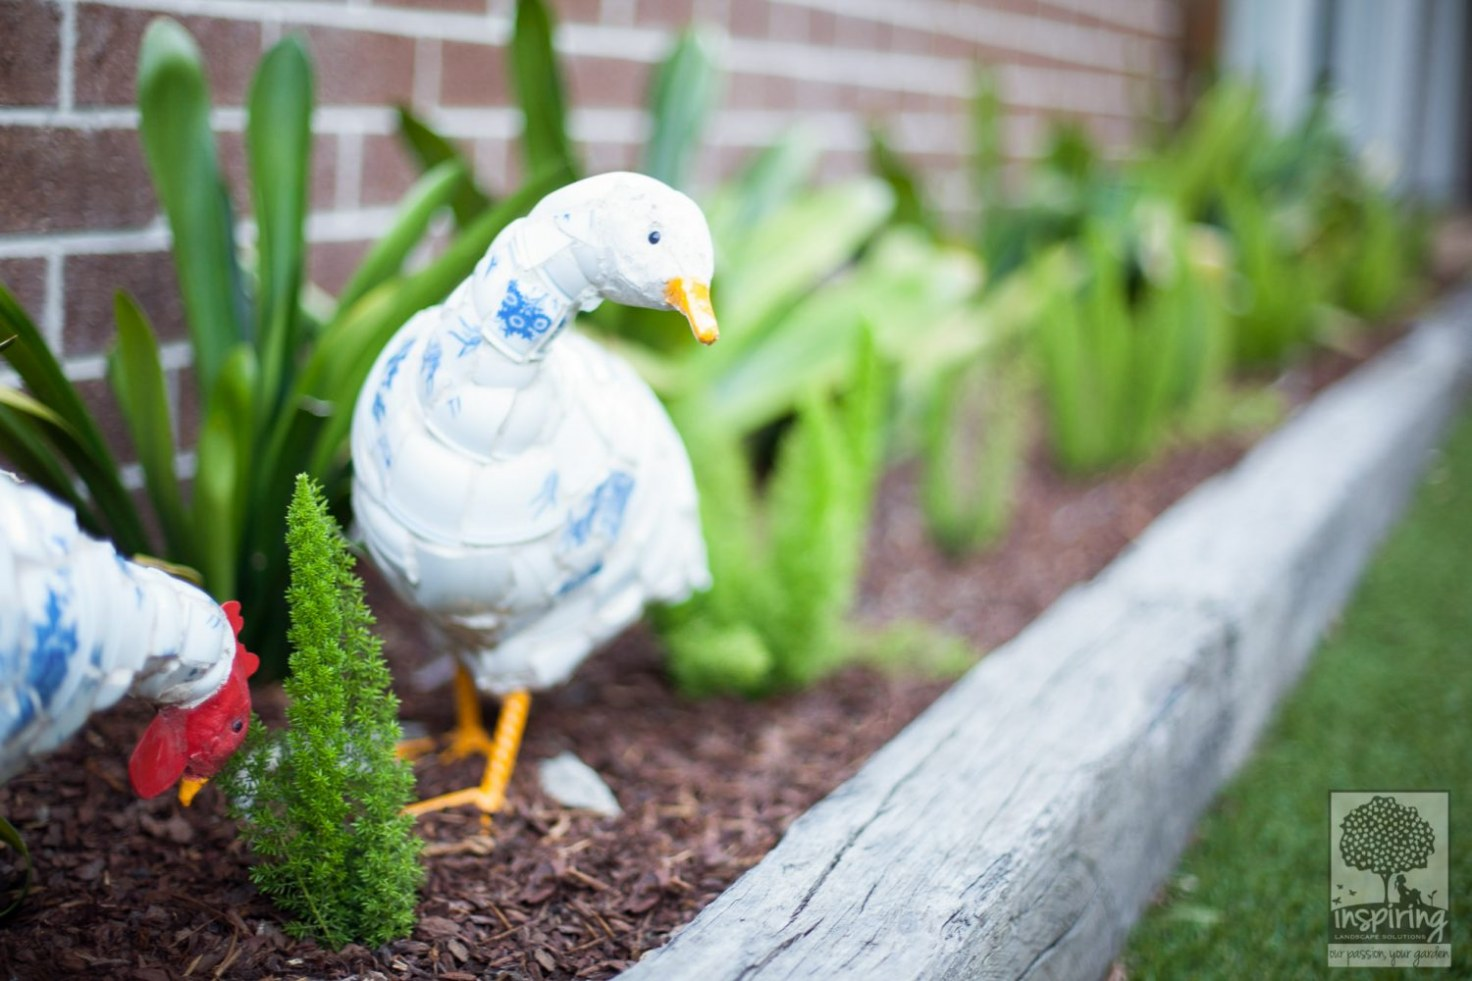 Cute ceramic duck and rooster used as garden accessory in Glen Waverley landscape design